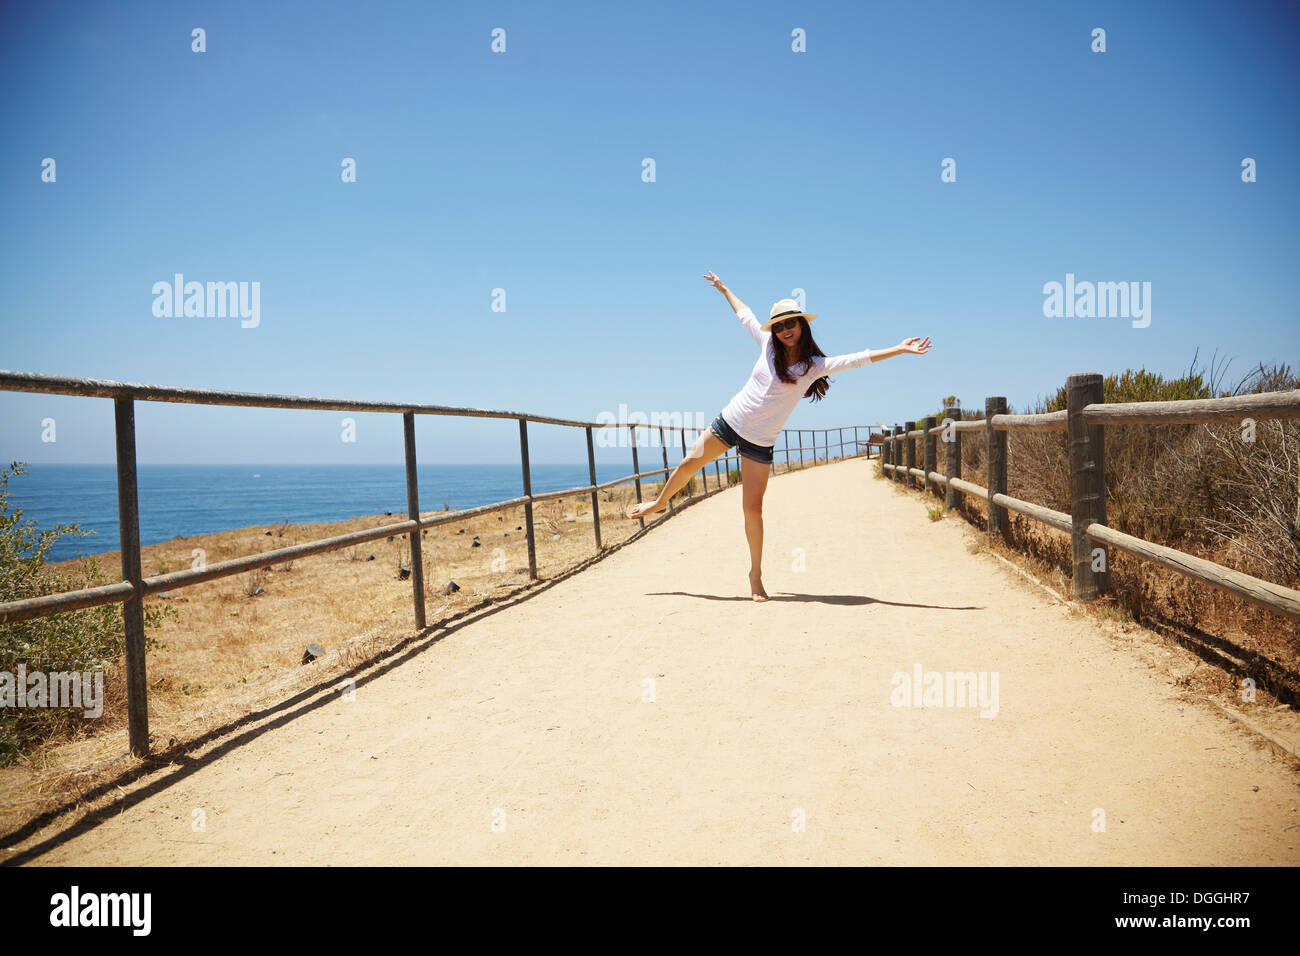 Young woman messing around, Palos Verdes, California, USA - Stock Image